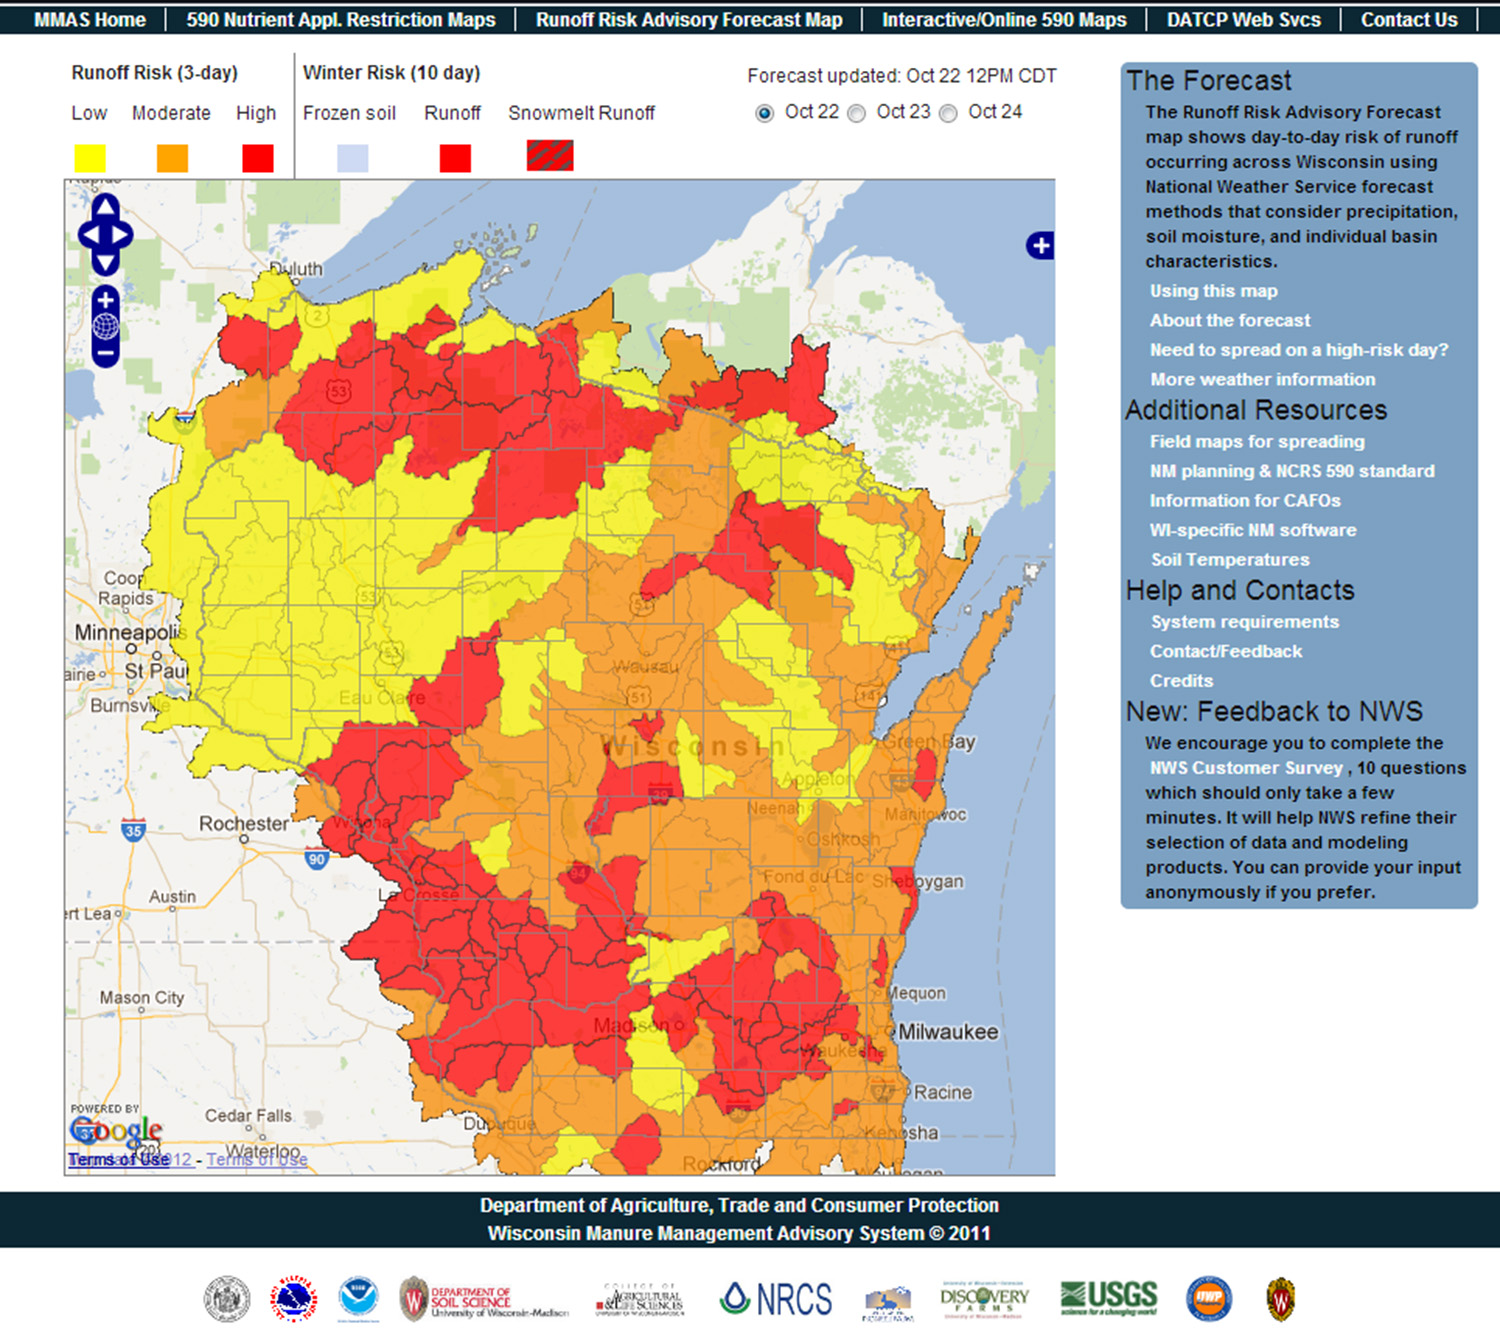 A screen shot of the Runoff Risk Advisory Forecast map which shows the day-to-day risk of runoff occurring across Wisconsin.